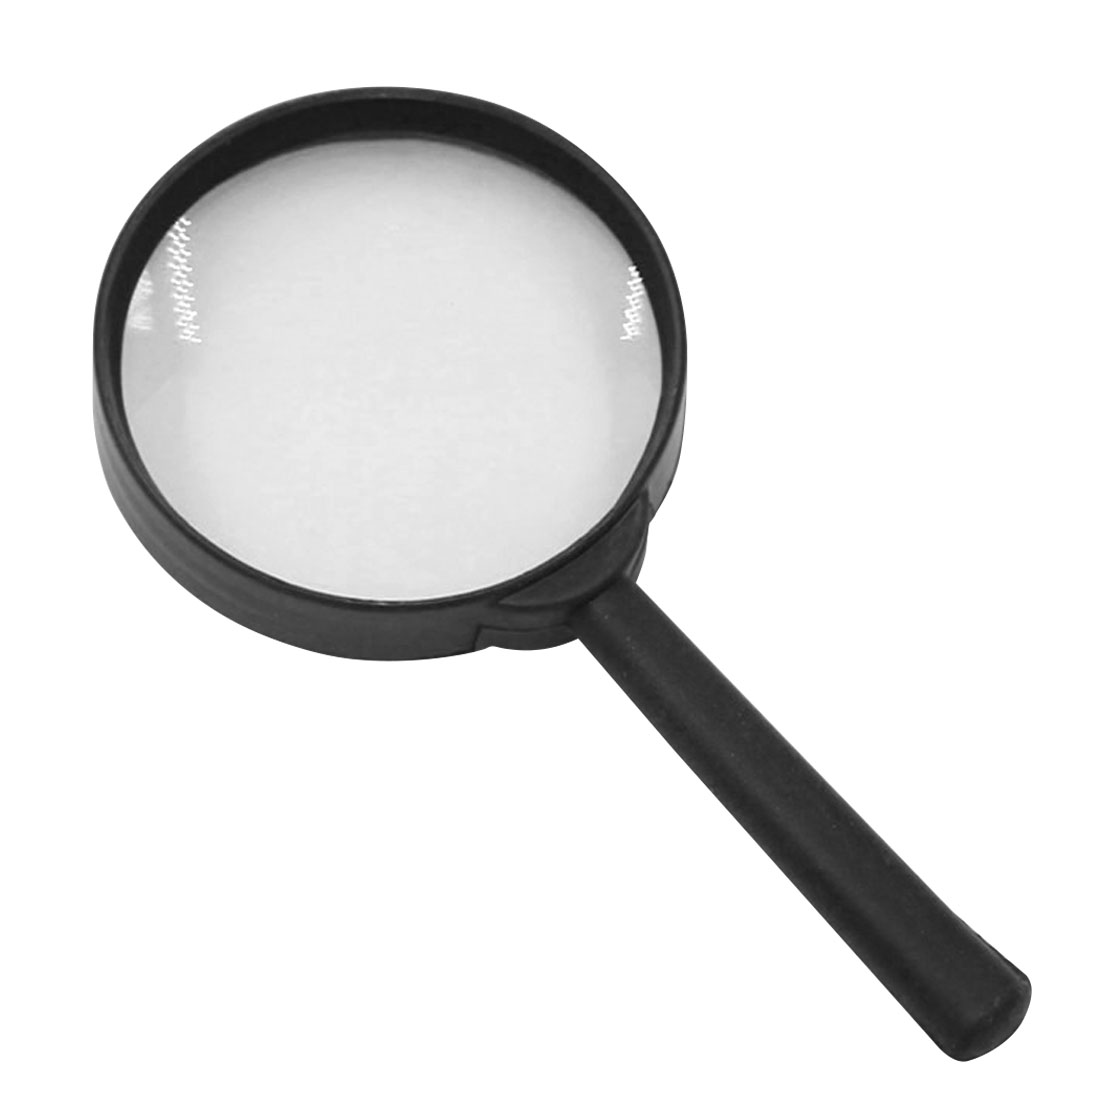 3X Magnifying Loupe Reading Glass Lens Handheld 60mm Magnifier